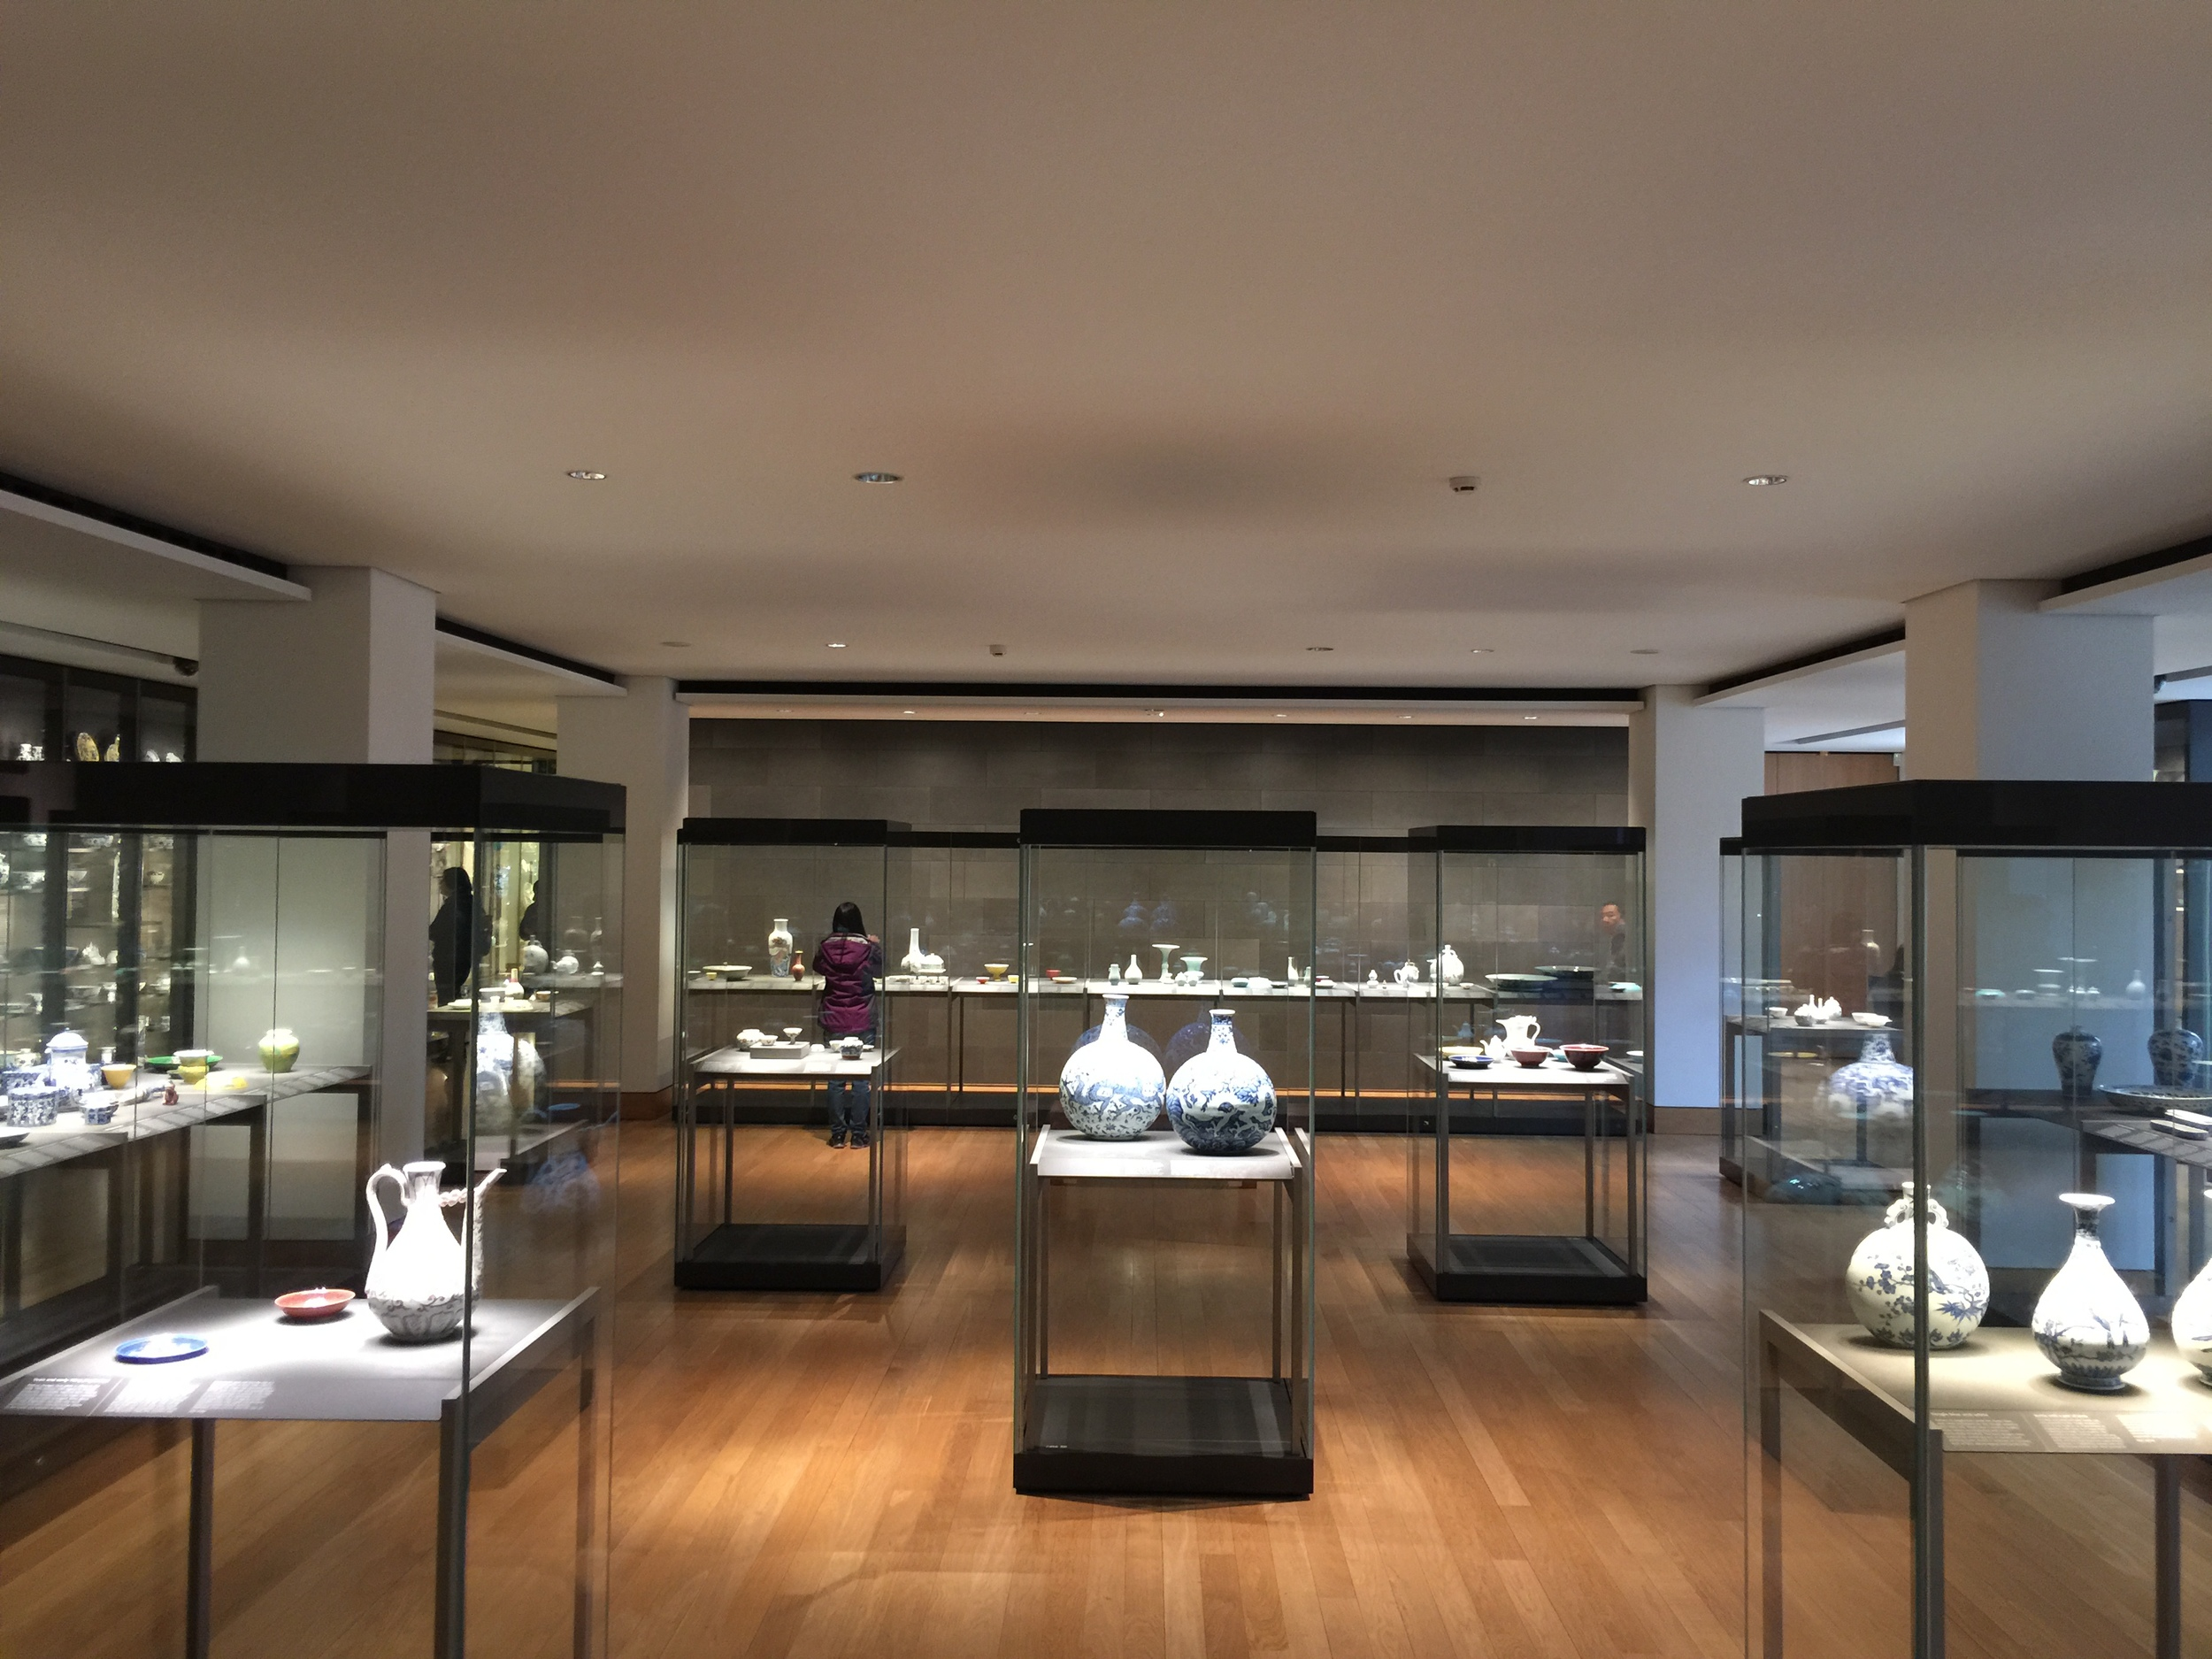 Sir Percival David Collection of Chinese Porcelain at the British Museum